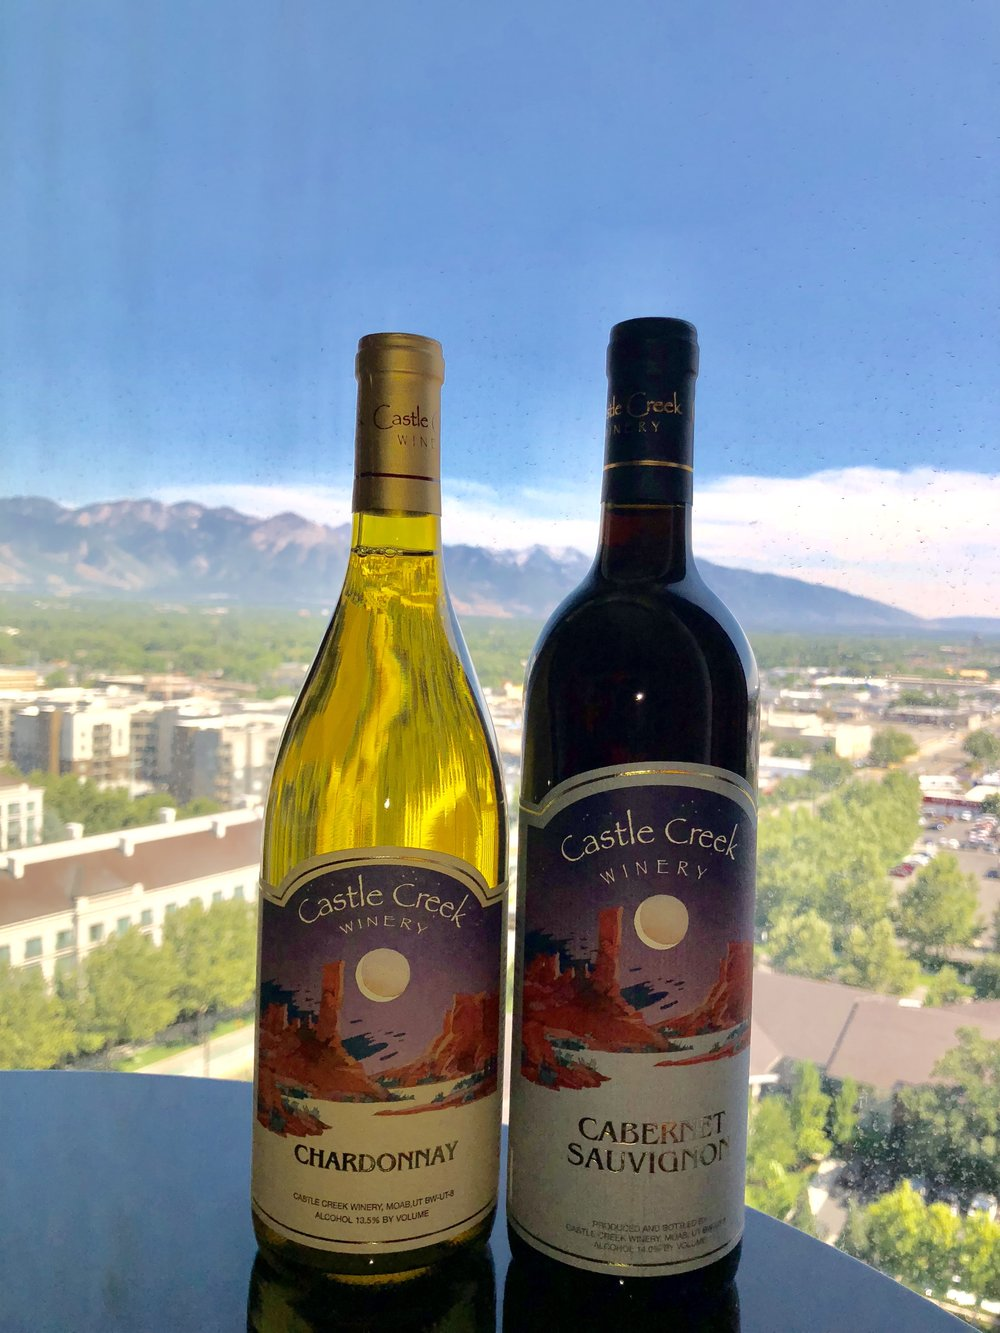 Cheers to Castle Creek from Salt Lake City!